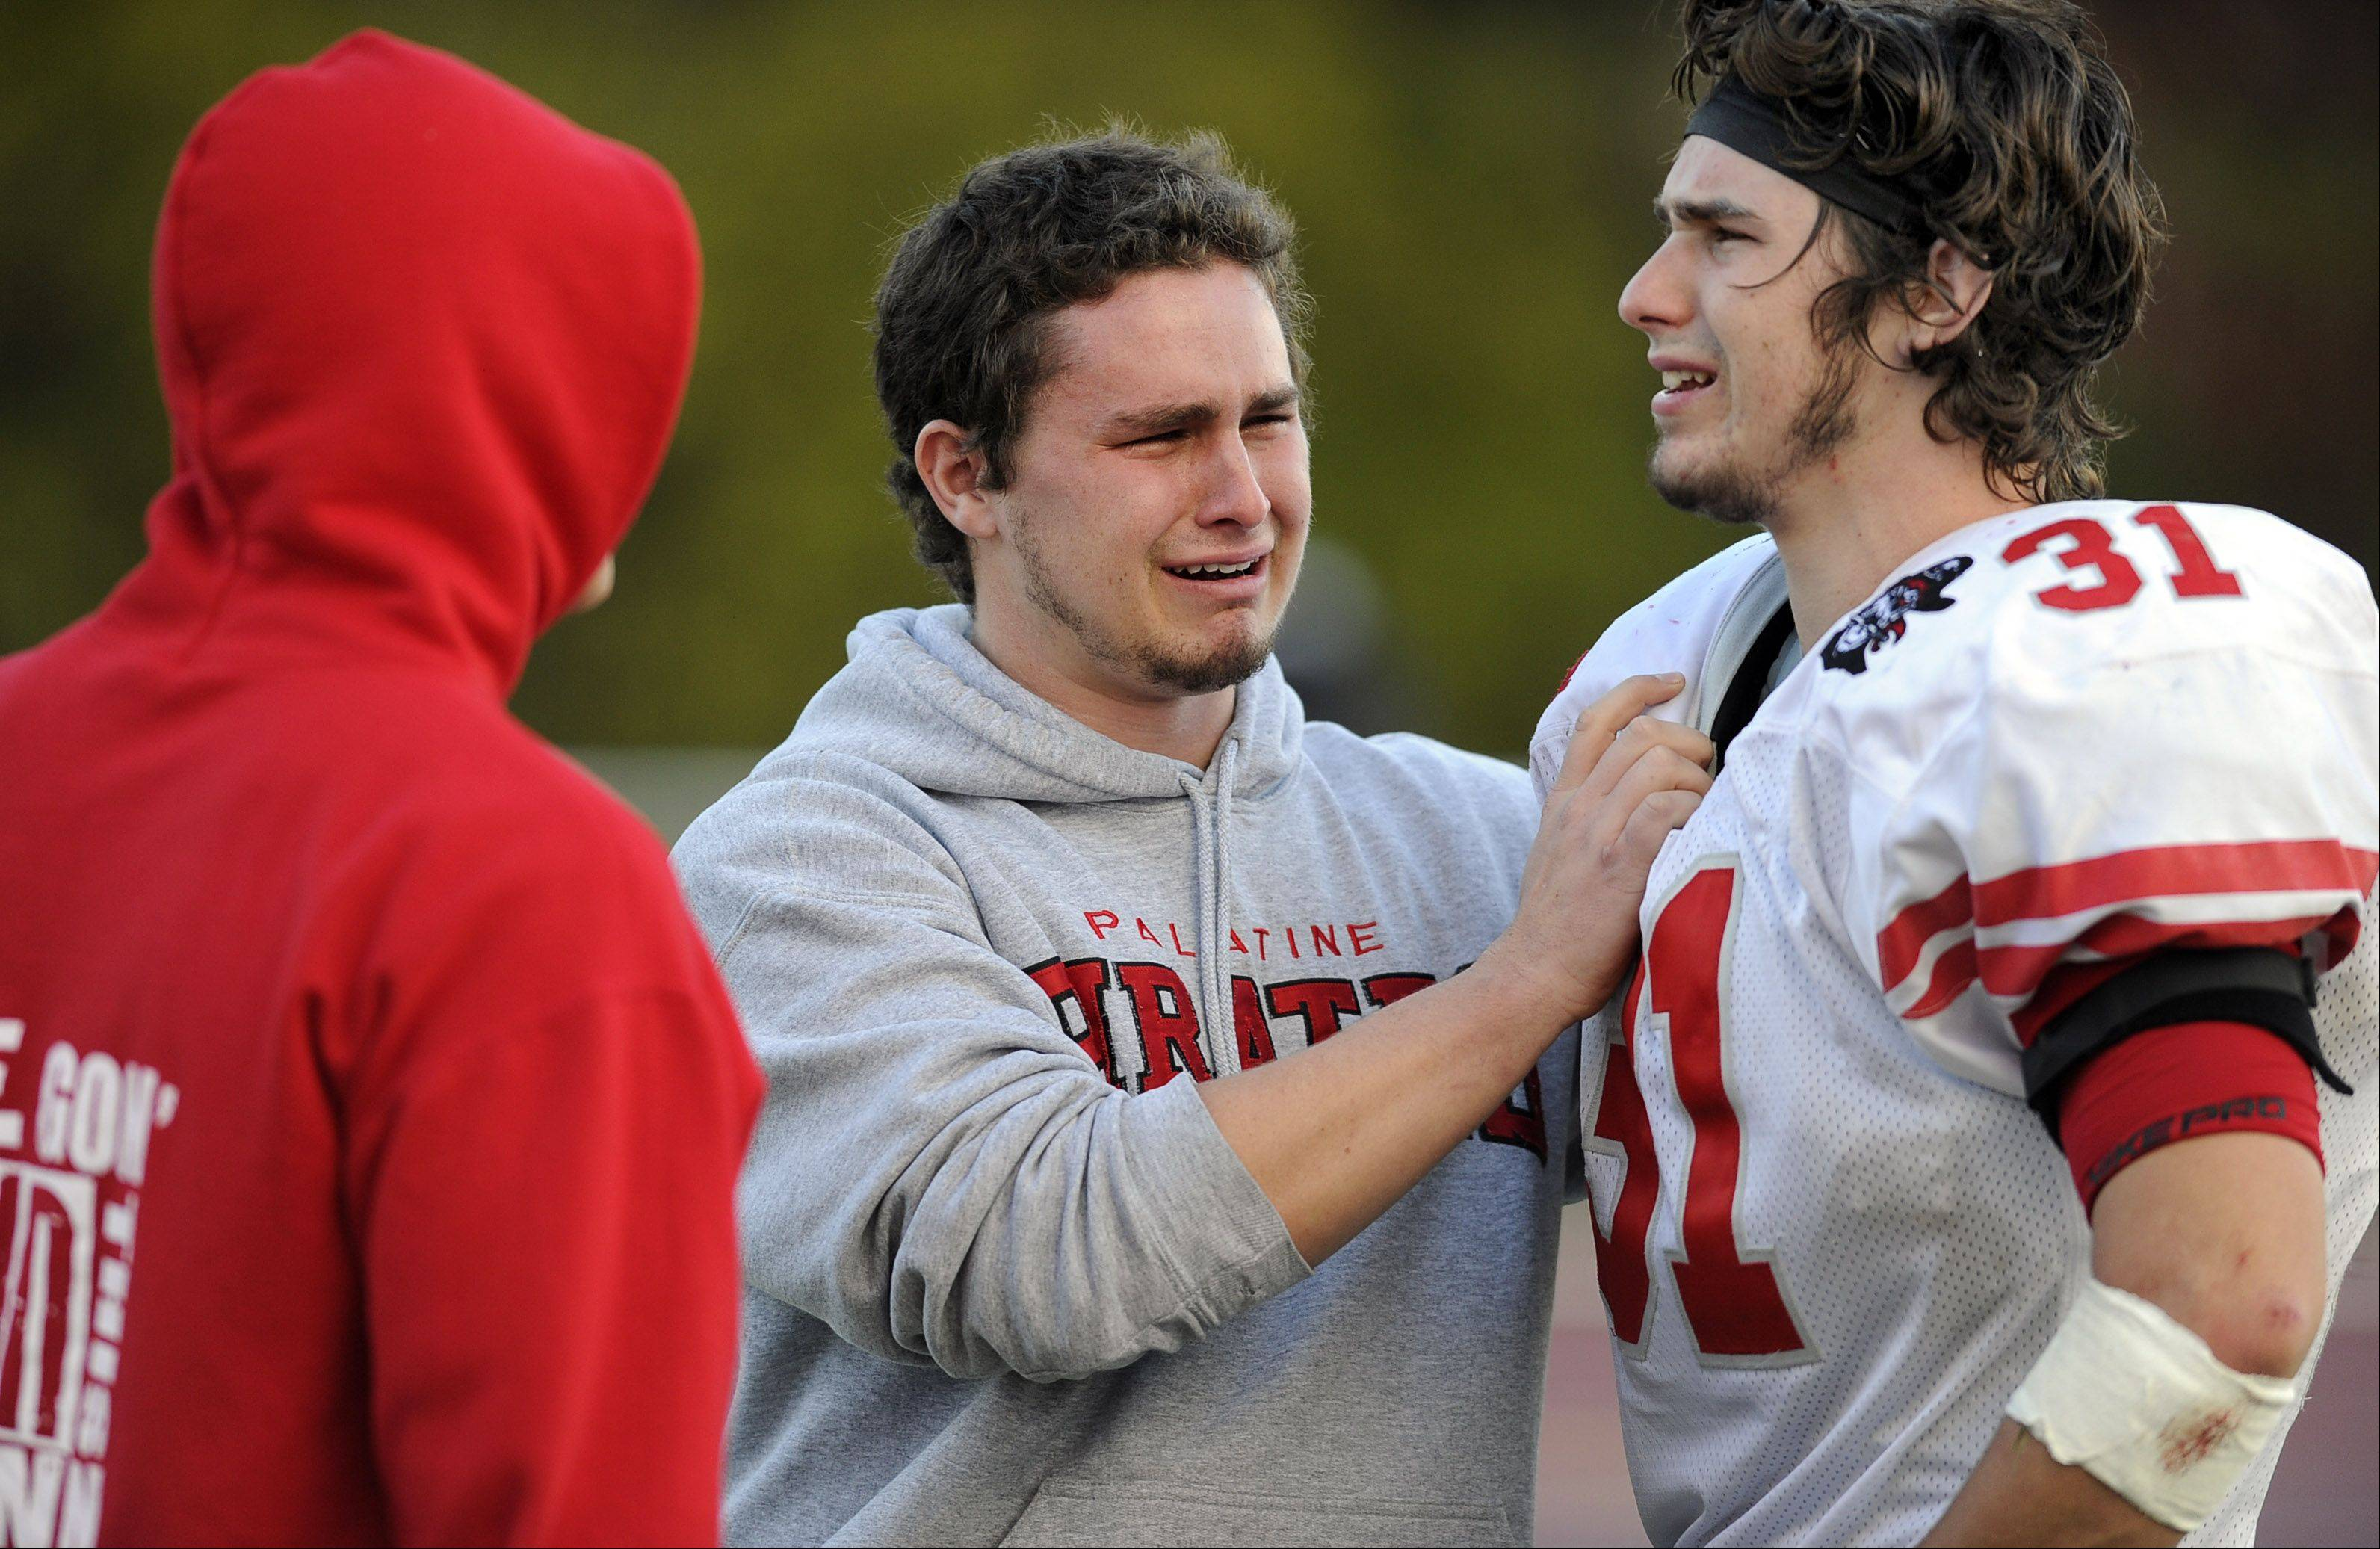 Palatine�s Jesse Bobbit and his brother react after losing to Loyola.